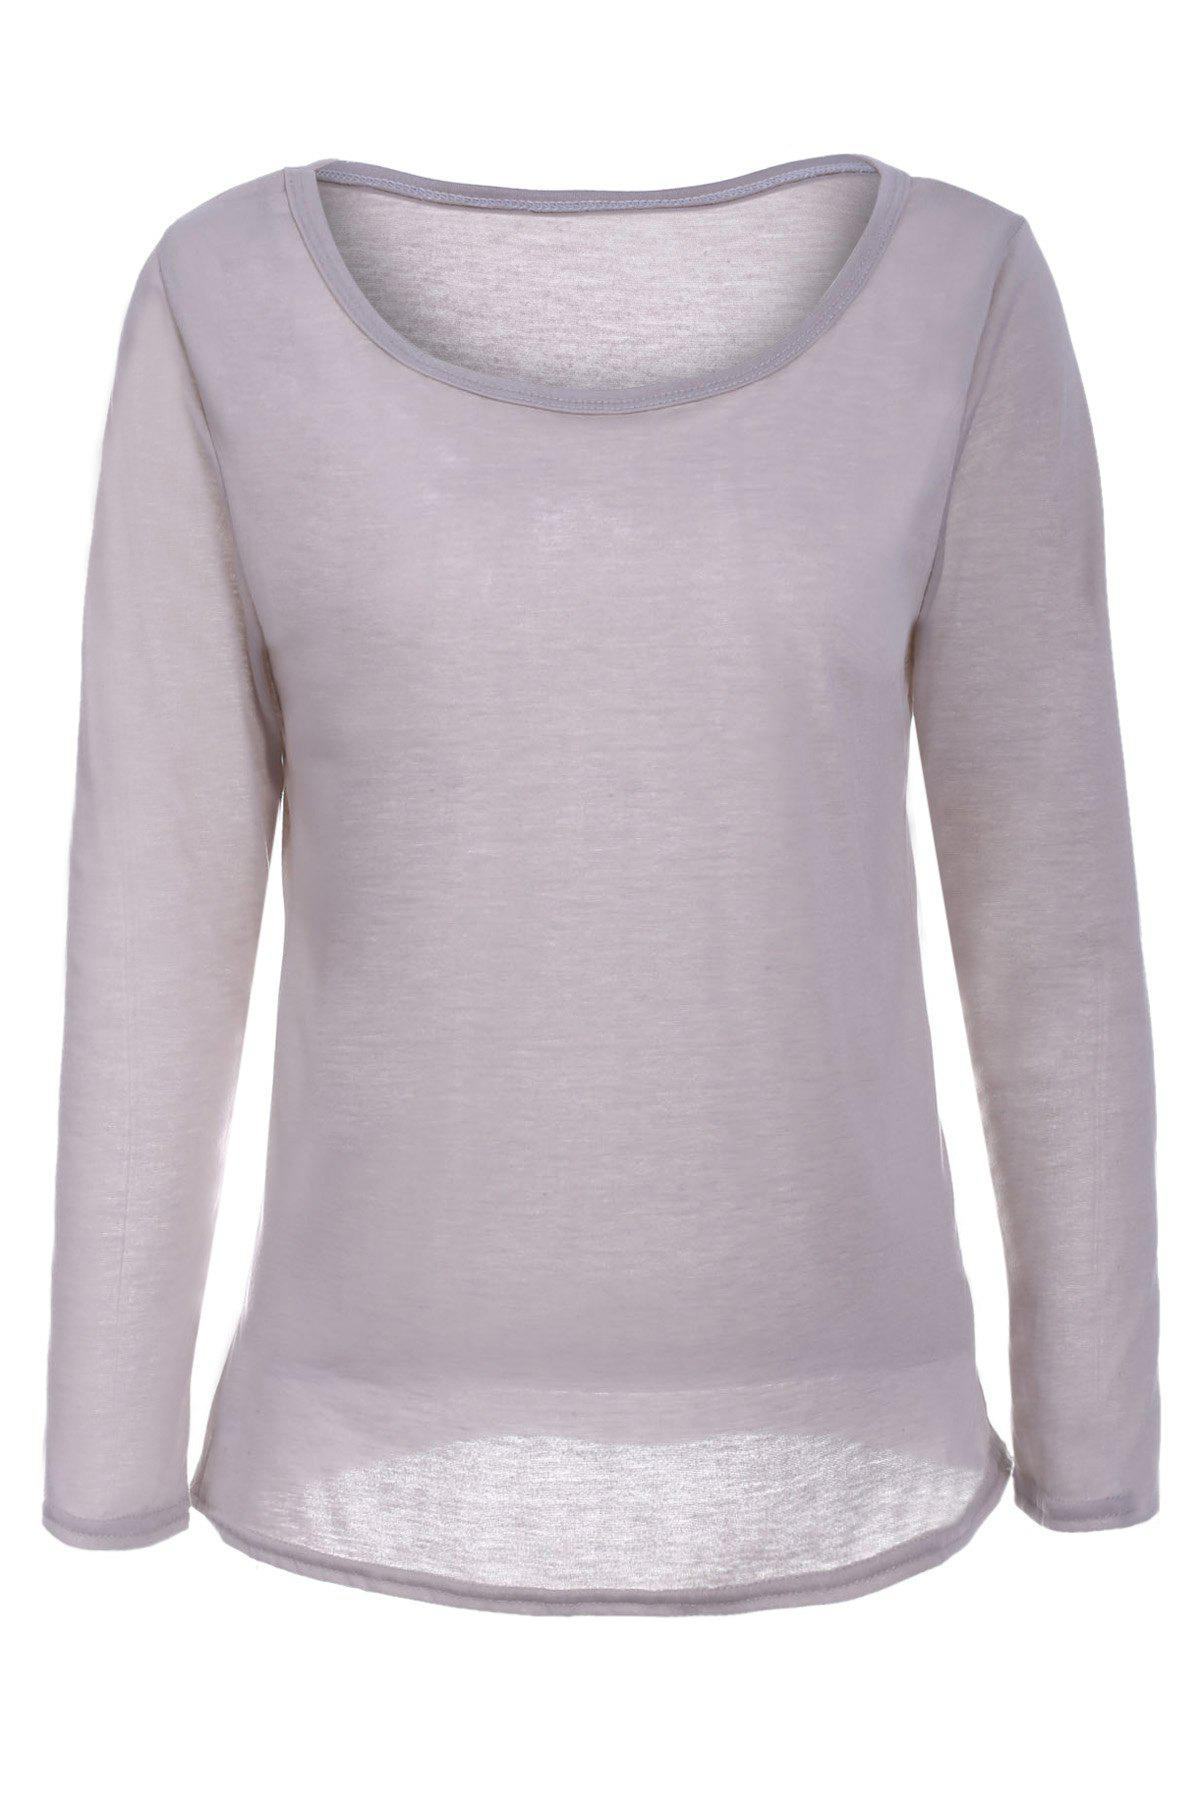 Store Casual Scoop Neck Long Sleeve Solid Color Loose T-Shirt For Women